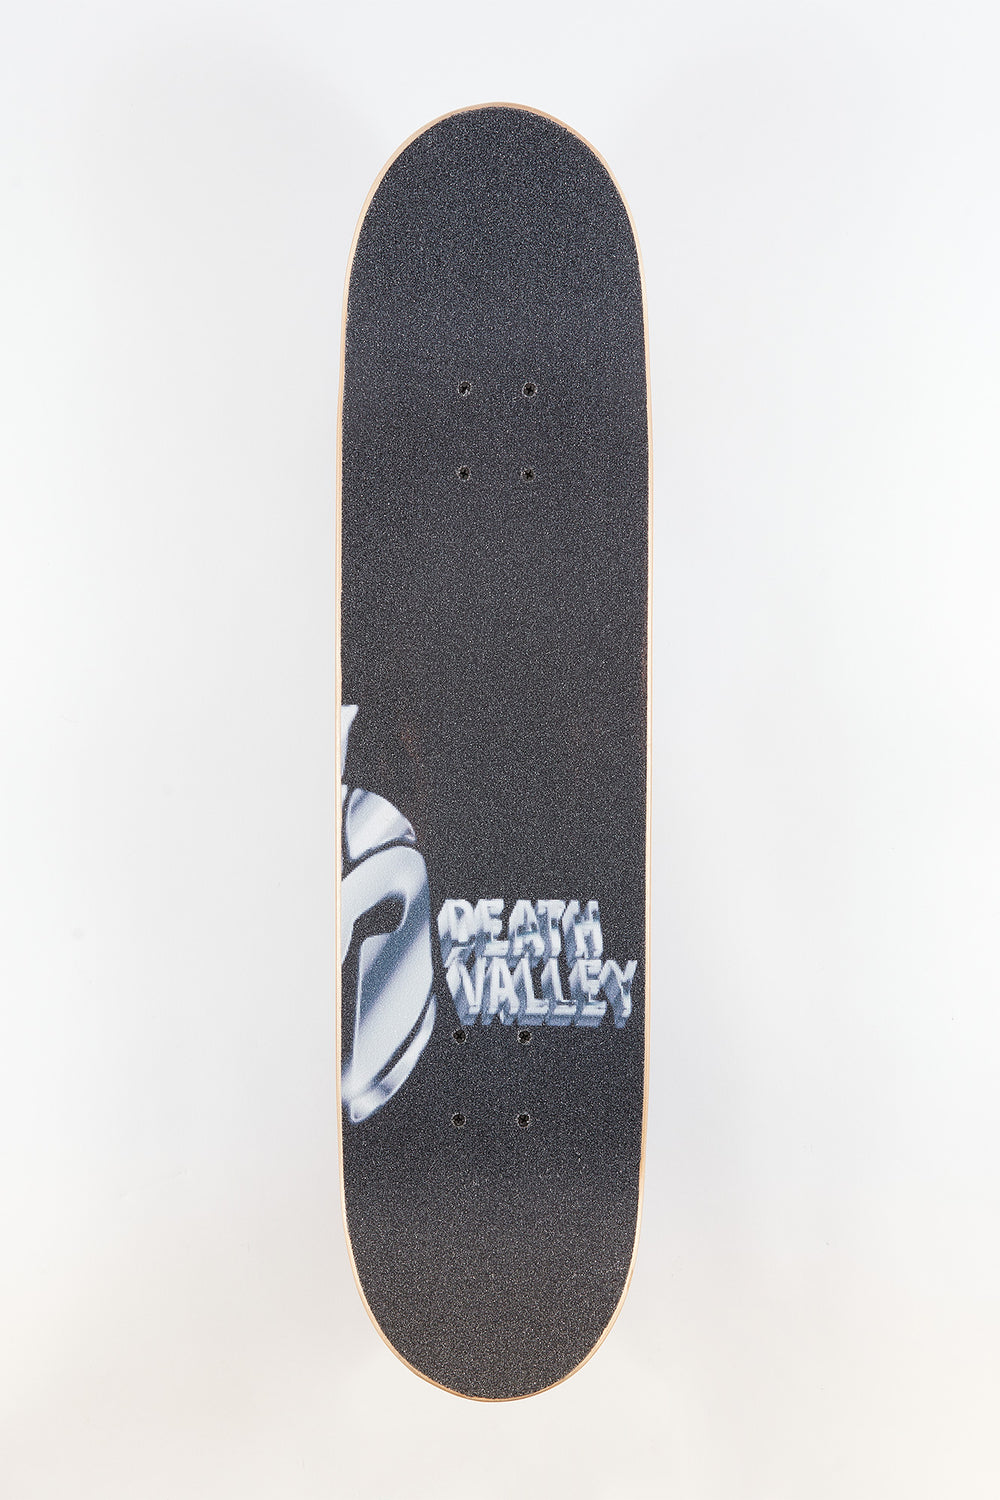 Skateboard Masque Spartan Death Valley 7.75